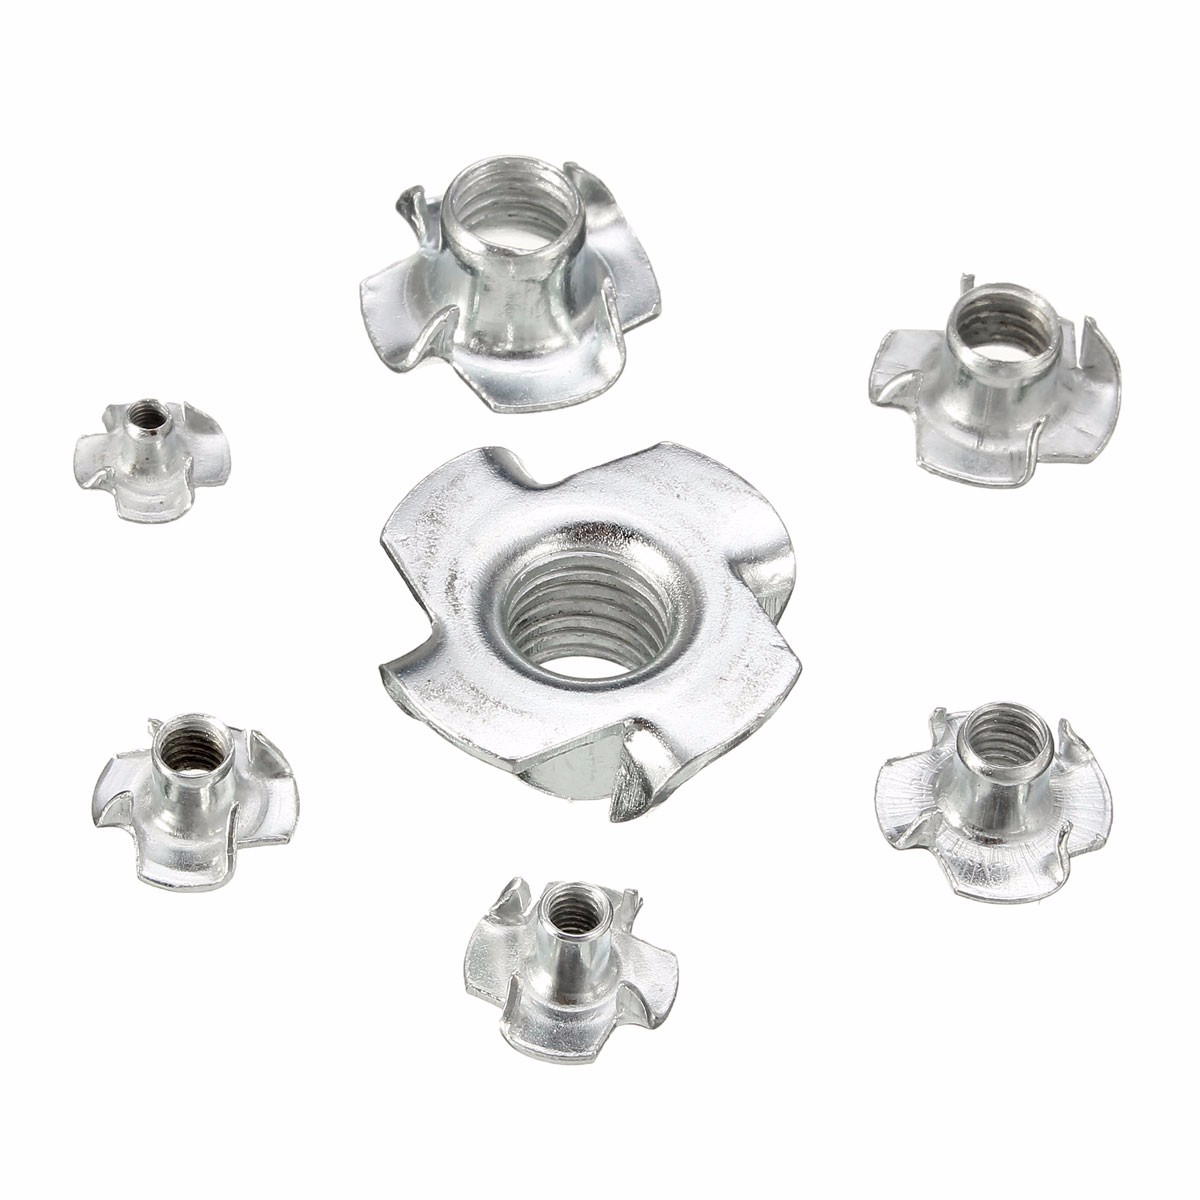 Suleve™ CSTN1 Four Prong T Nut Inserts Carbon Steel Zinc Plated For Wood M3/M4/M5/M6/M8/M12 10Pcs